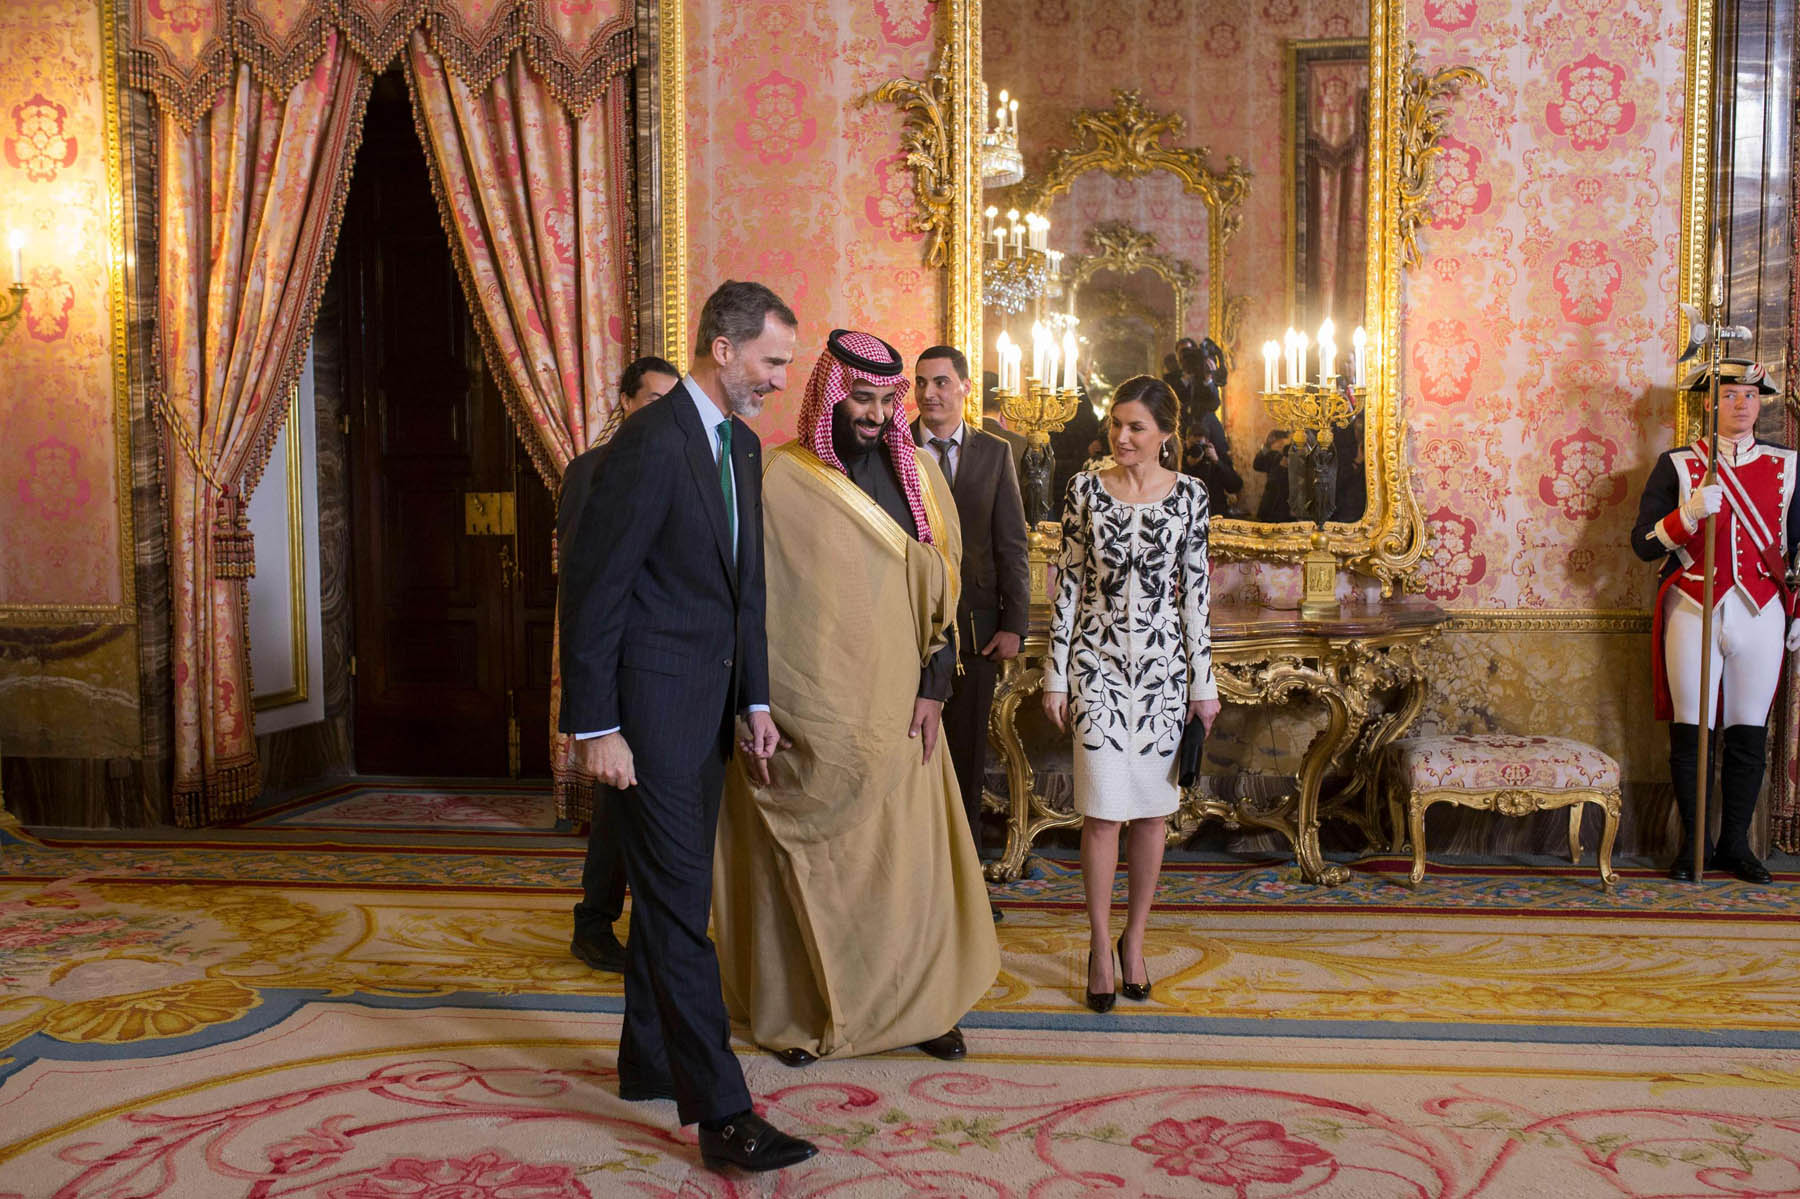 Spain's King Felipe VI (L) walks with his wife queen Letizia (R) and Saudi Crown Prince Mohammed bin Salman bin Abdulaziz at the Royal Palace in Madrid, last April 12. (AFP)